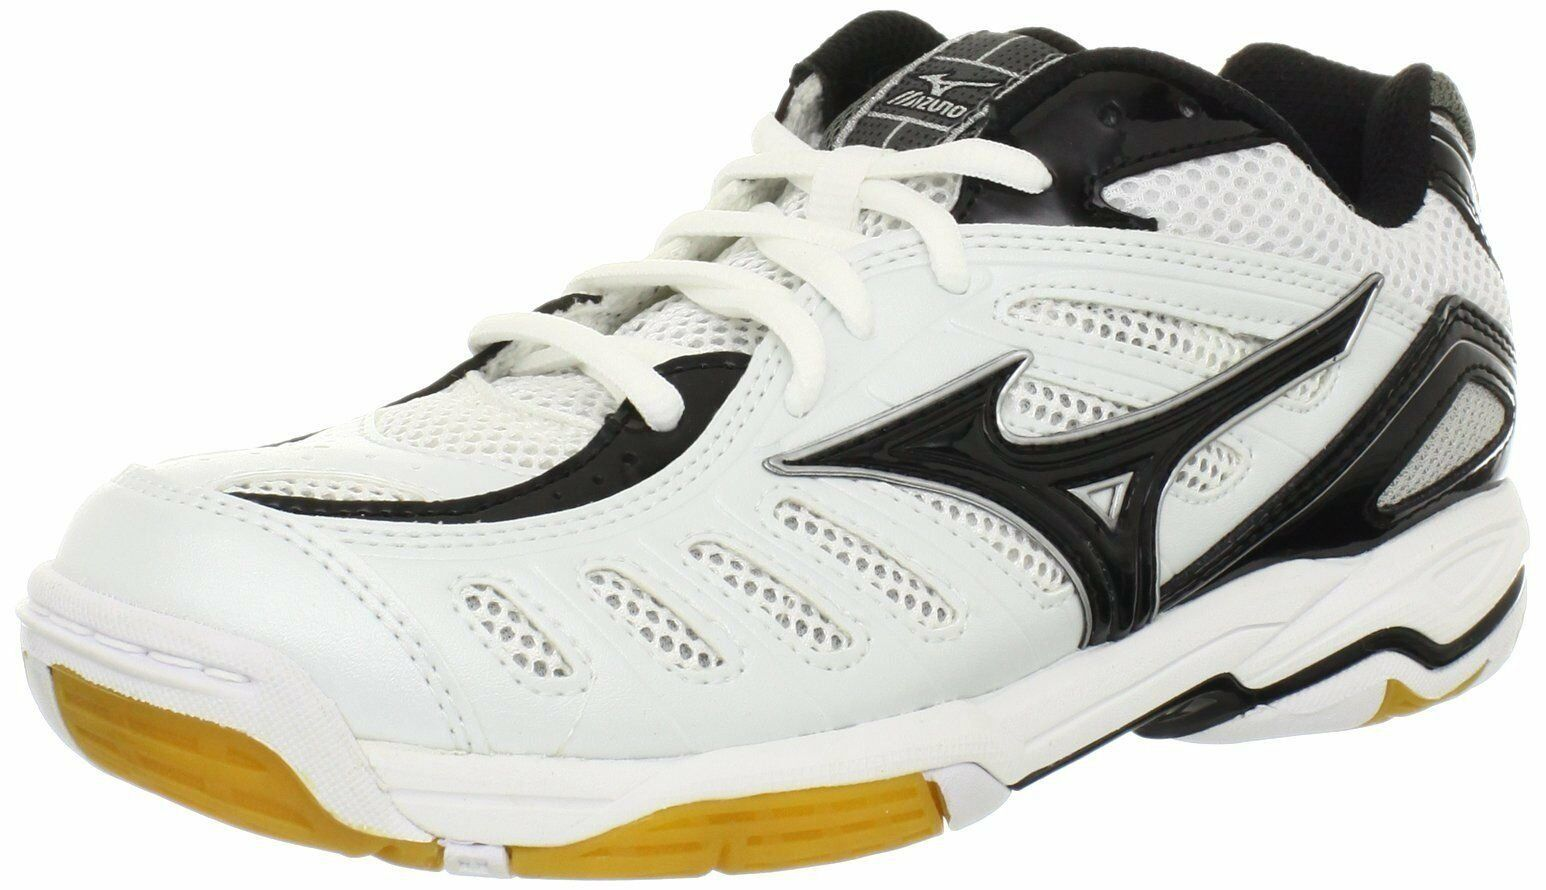 Mizuno femmes  Wave Rally 4 Volleyball Shoe,  blanc / noir , 430159 0090